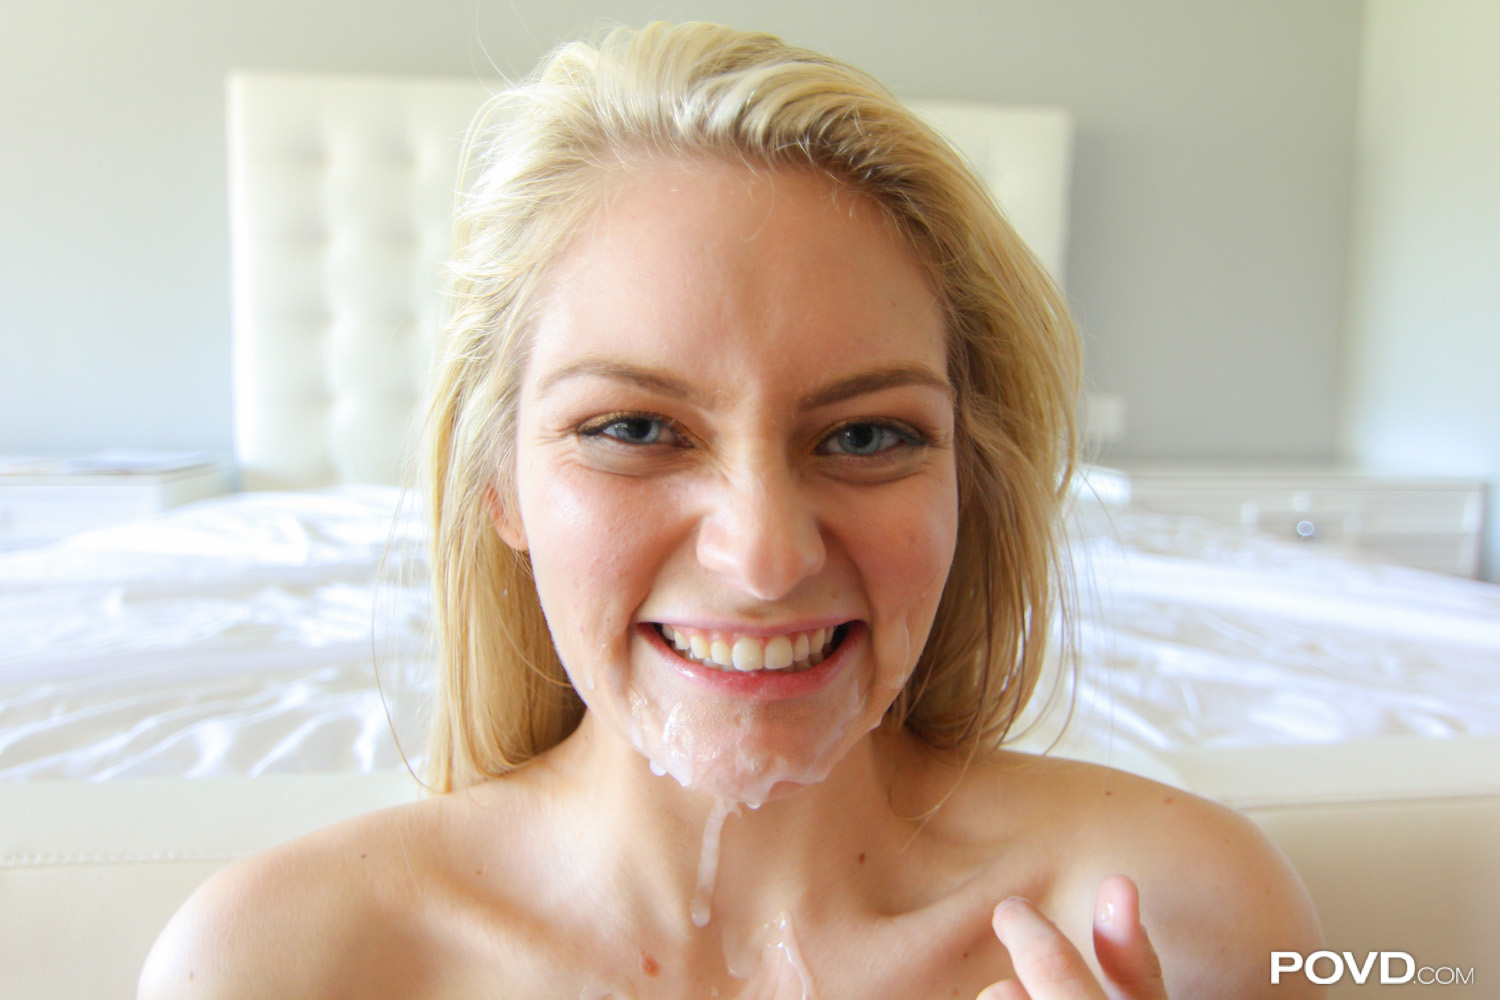 Milf squirt anal clips